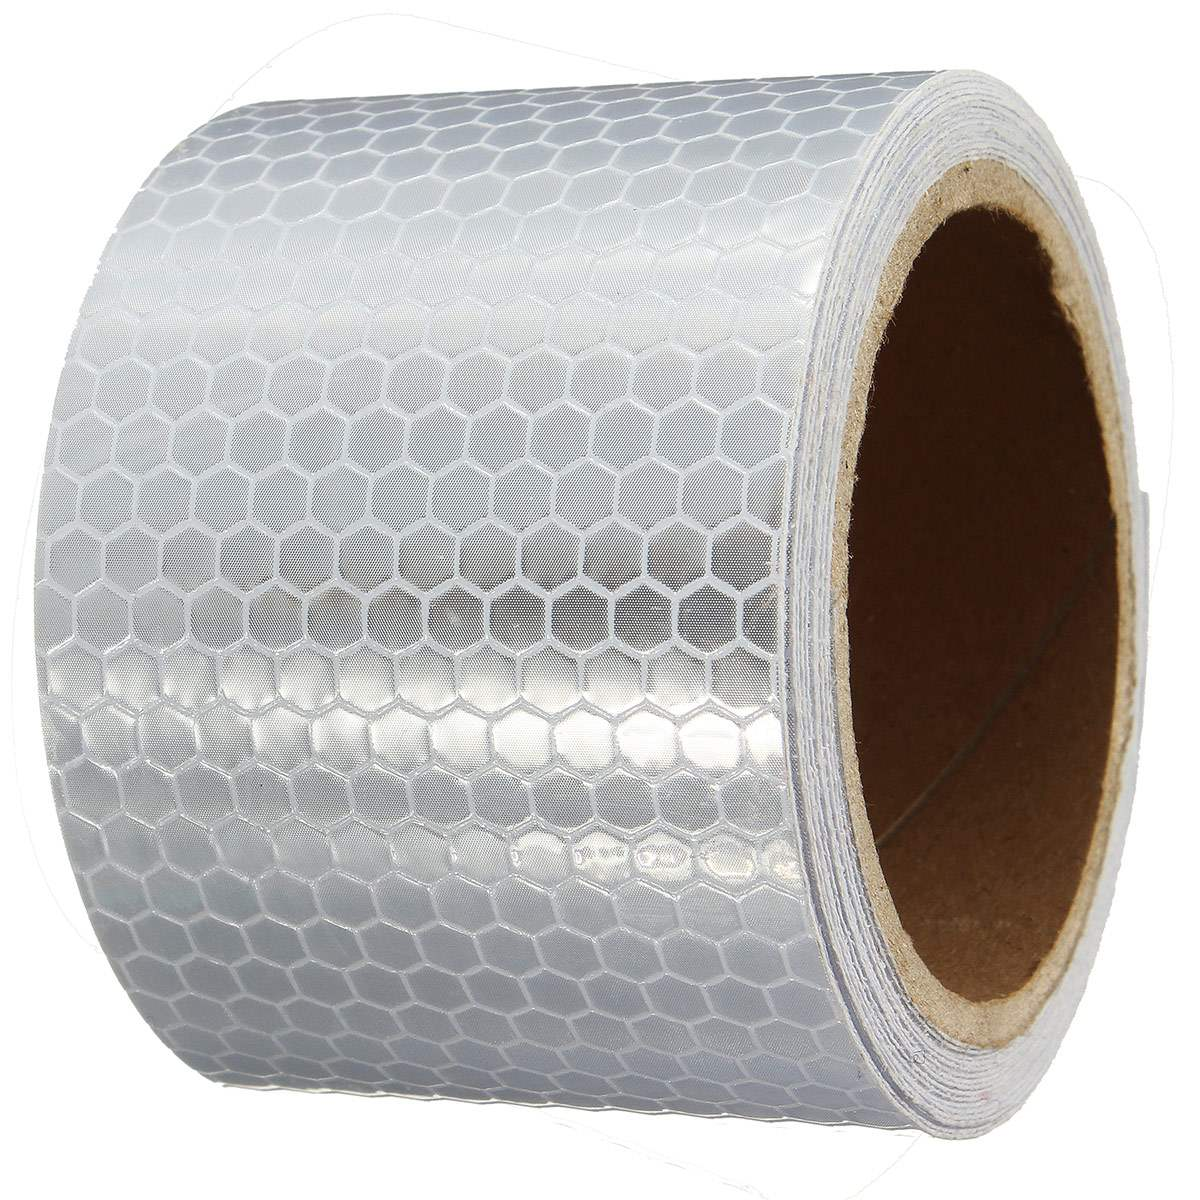 5x300cm Car Decoration Motorcycle Reflective Tape Stickers Car Styling For Automobiles Safe